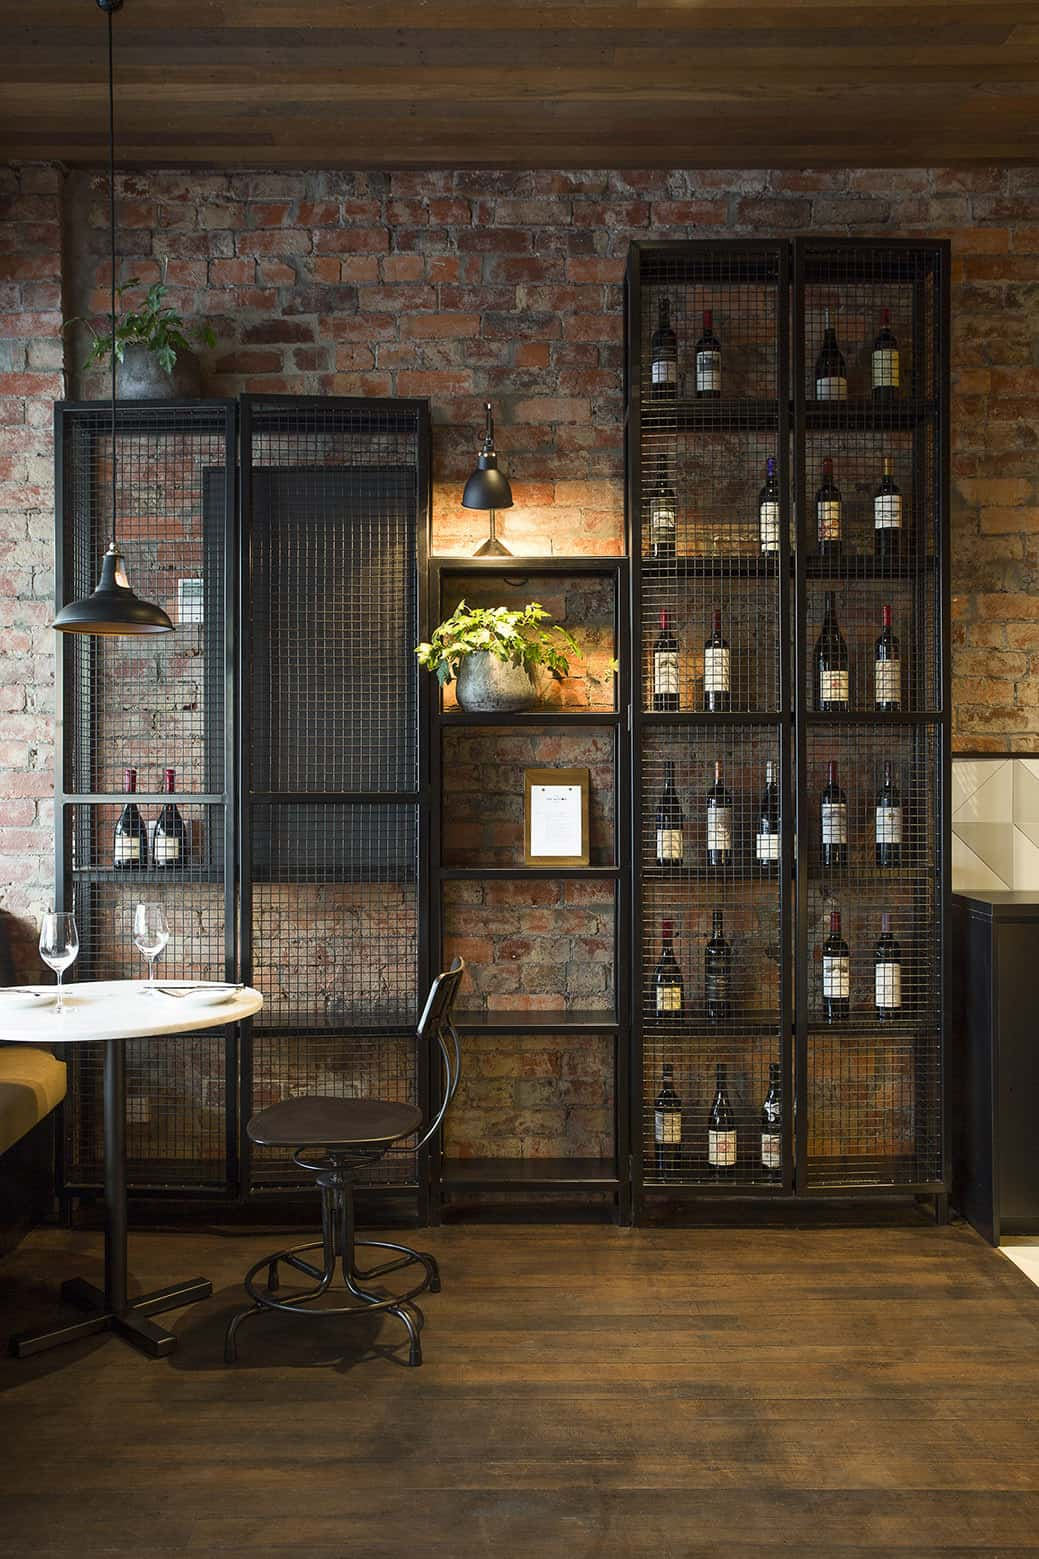 How To Try The Unconventional Steampunk Decor In Your Home-HOMESTHETICS (6)